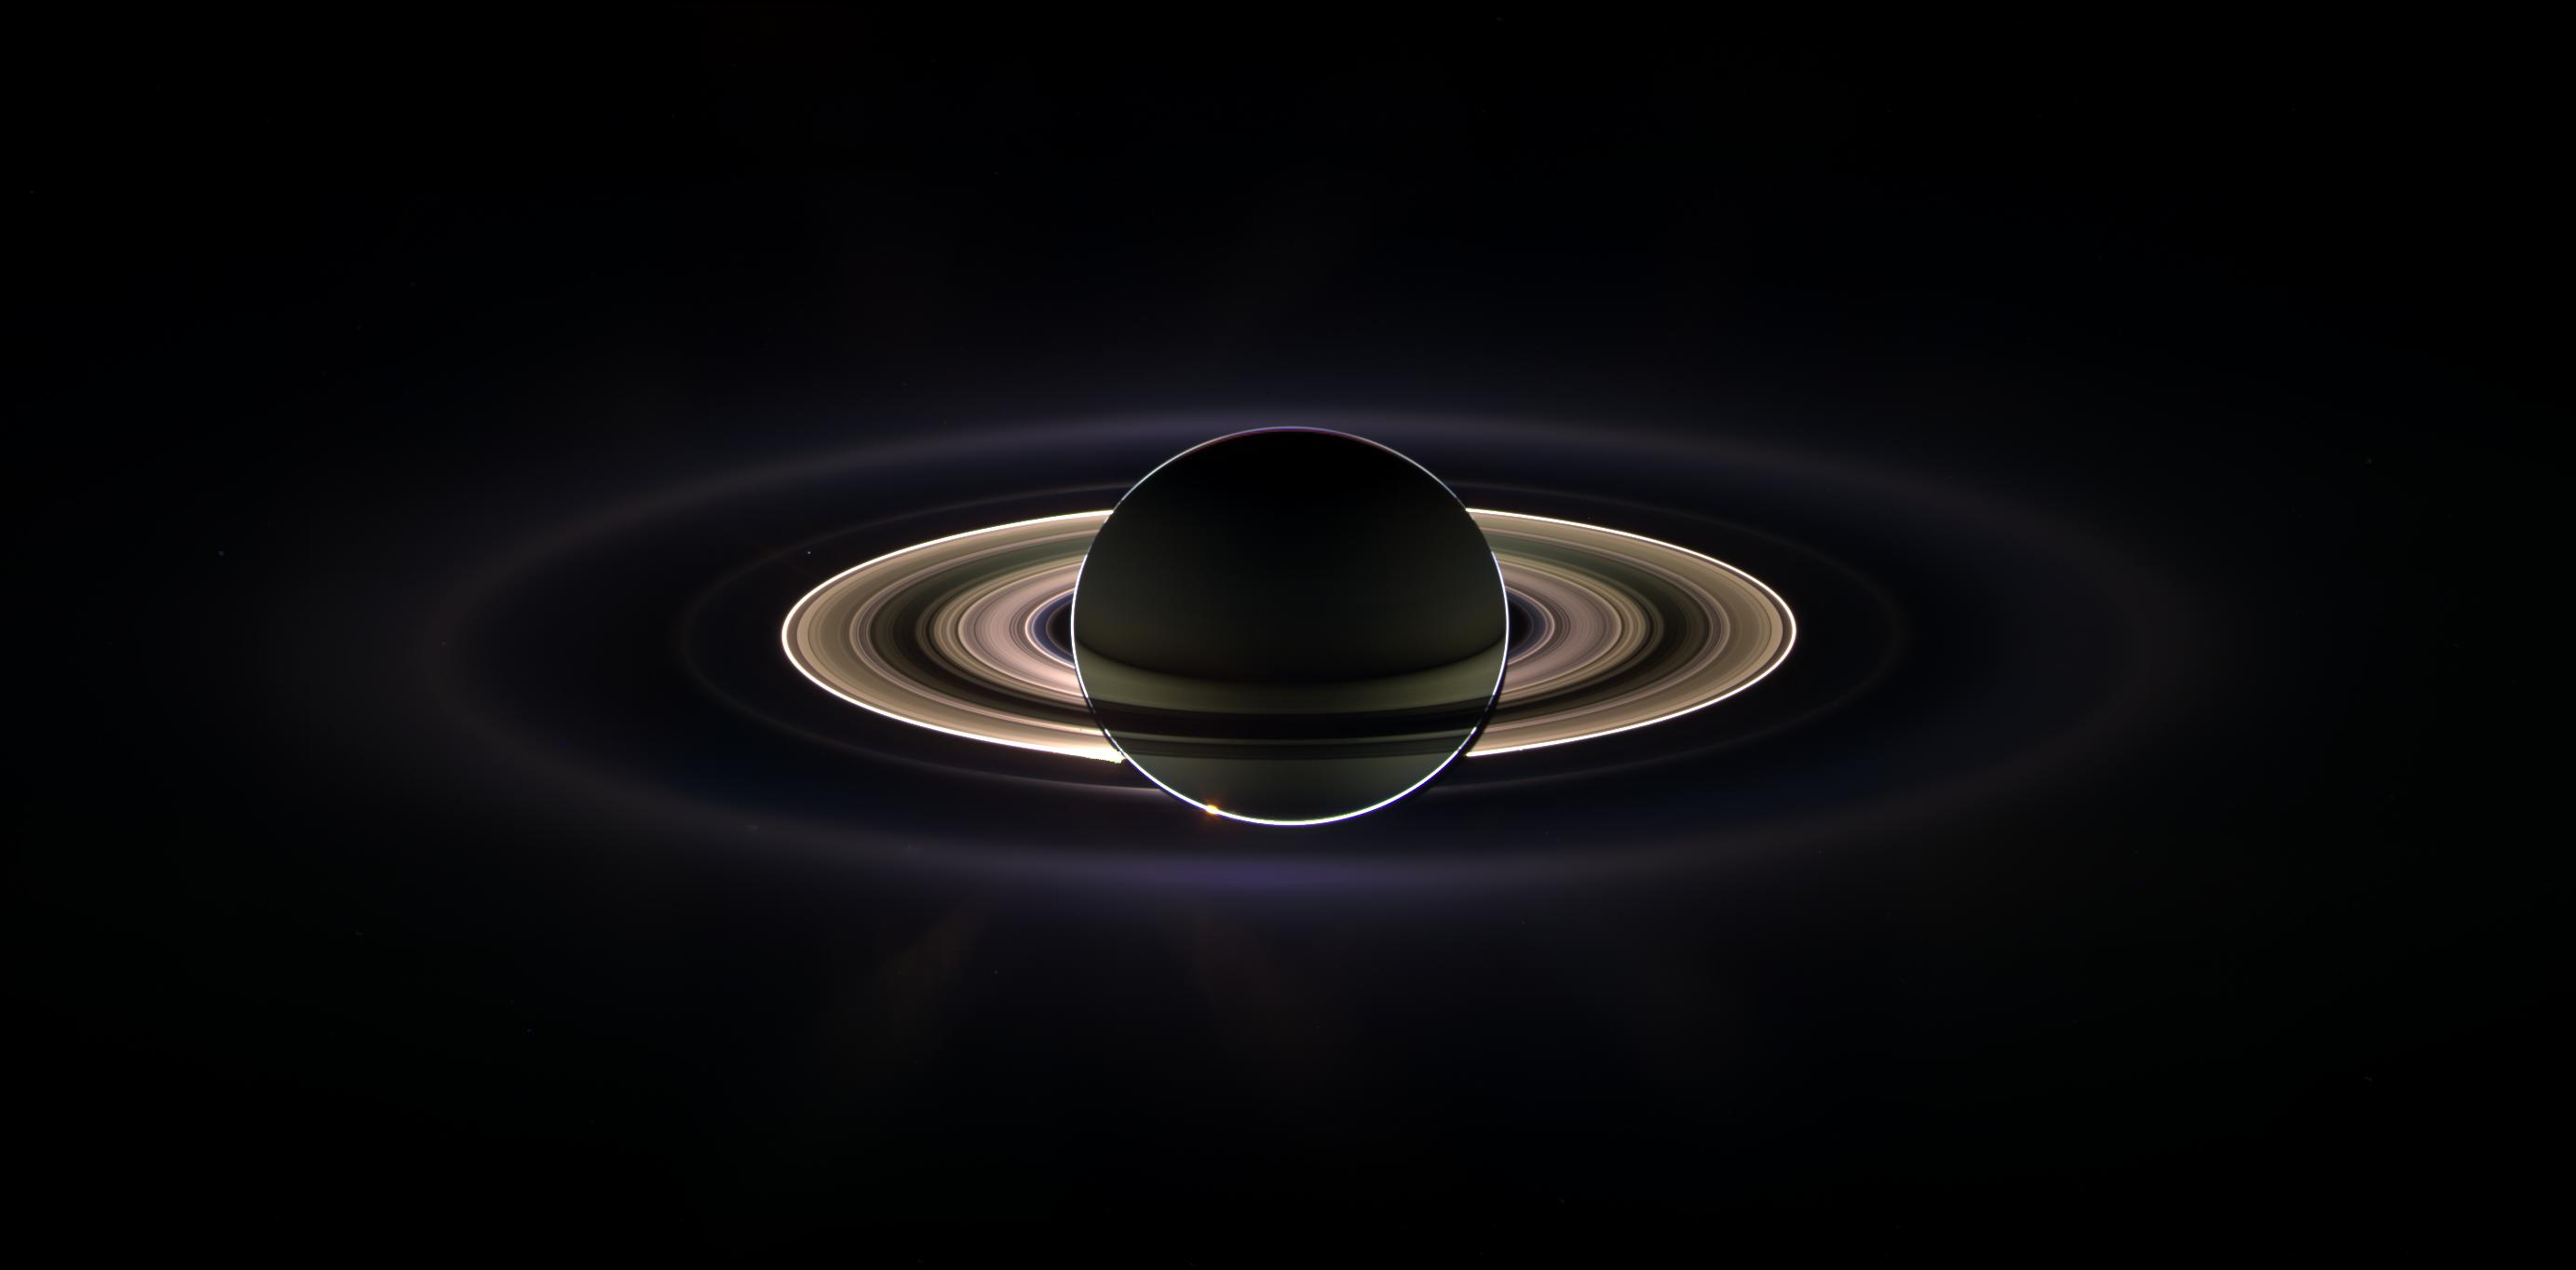 With giant Saturn hanging in the blackness and sheltering Cassini from the sun's blinding glare, the spacecraft viewed the rings as never before, revealing previously unknown faint rings and even glimpsing its home world. Credit: NASA/JPL/Space Science Institute